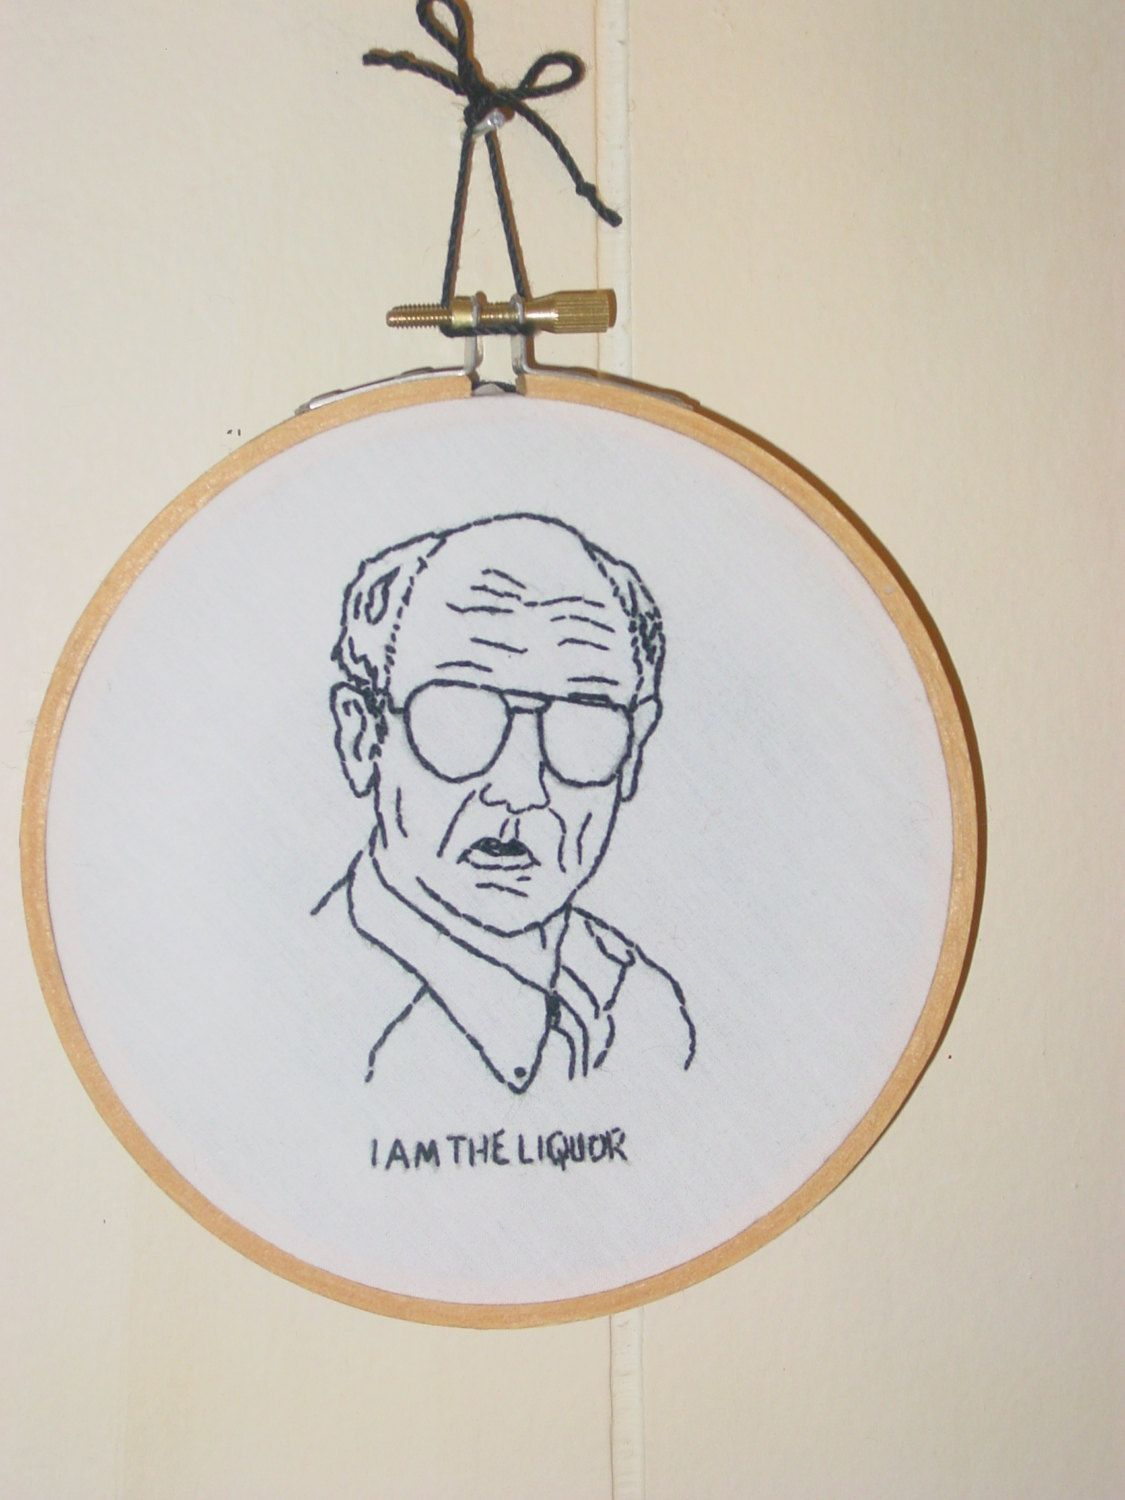 Mr Lahey Trailer Park Boys Tribute Finished Embroidery In Hoop With Hanger By Trailer Park Boys Cross Stitch Embroidery